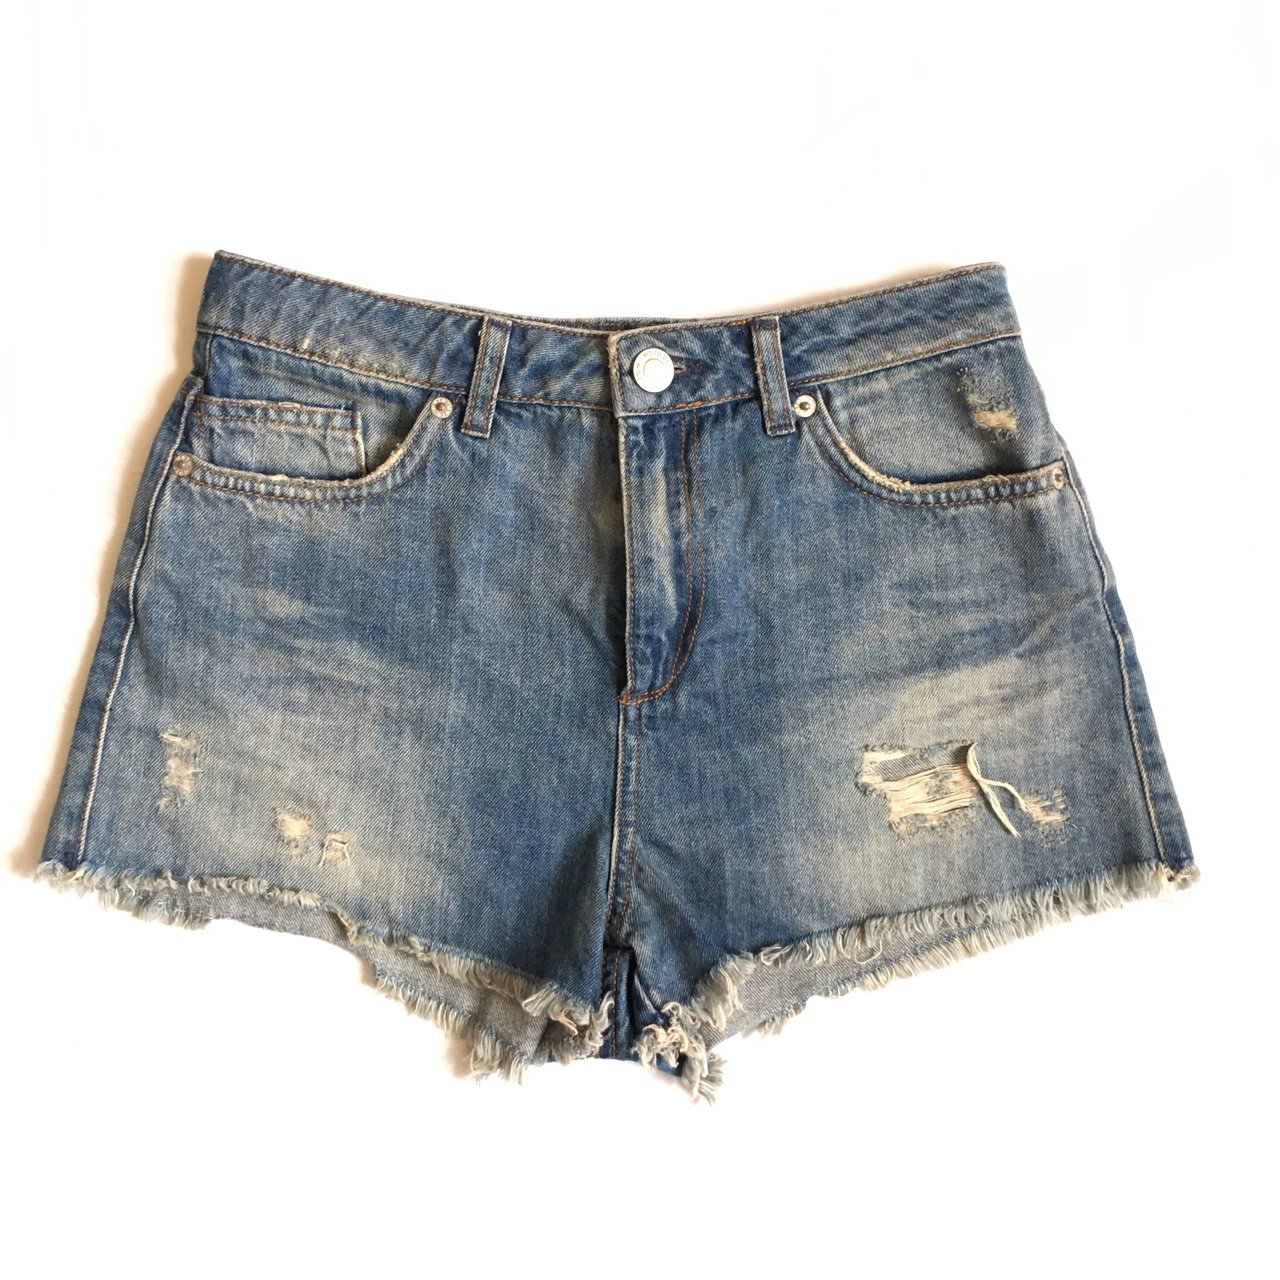 711b02c41c @nottinghillcloset. 36 minutes ago. London, United Kingdom. TOPSHOP Moto  Tall W28 High Waisted Blue Ripped Denim Jean Shorts Festival Summer